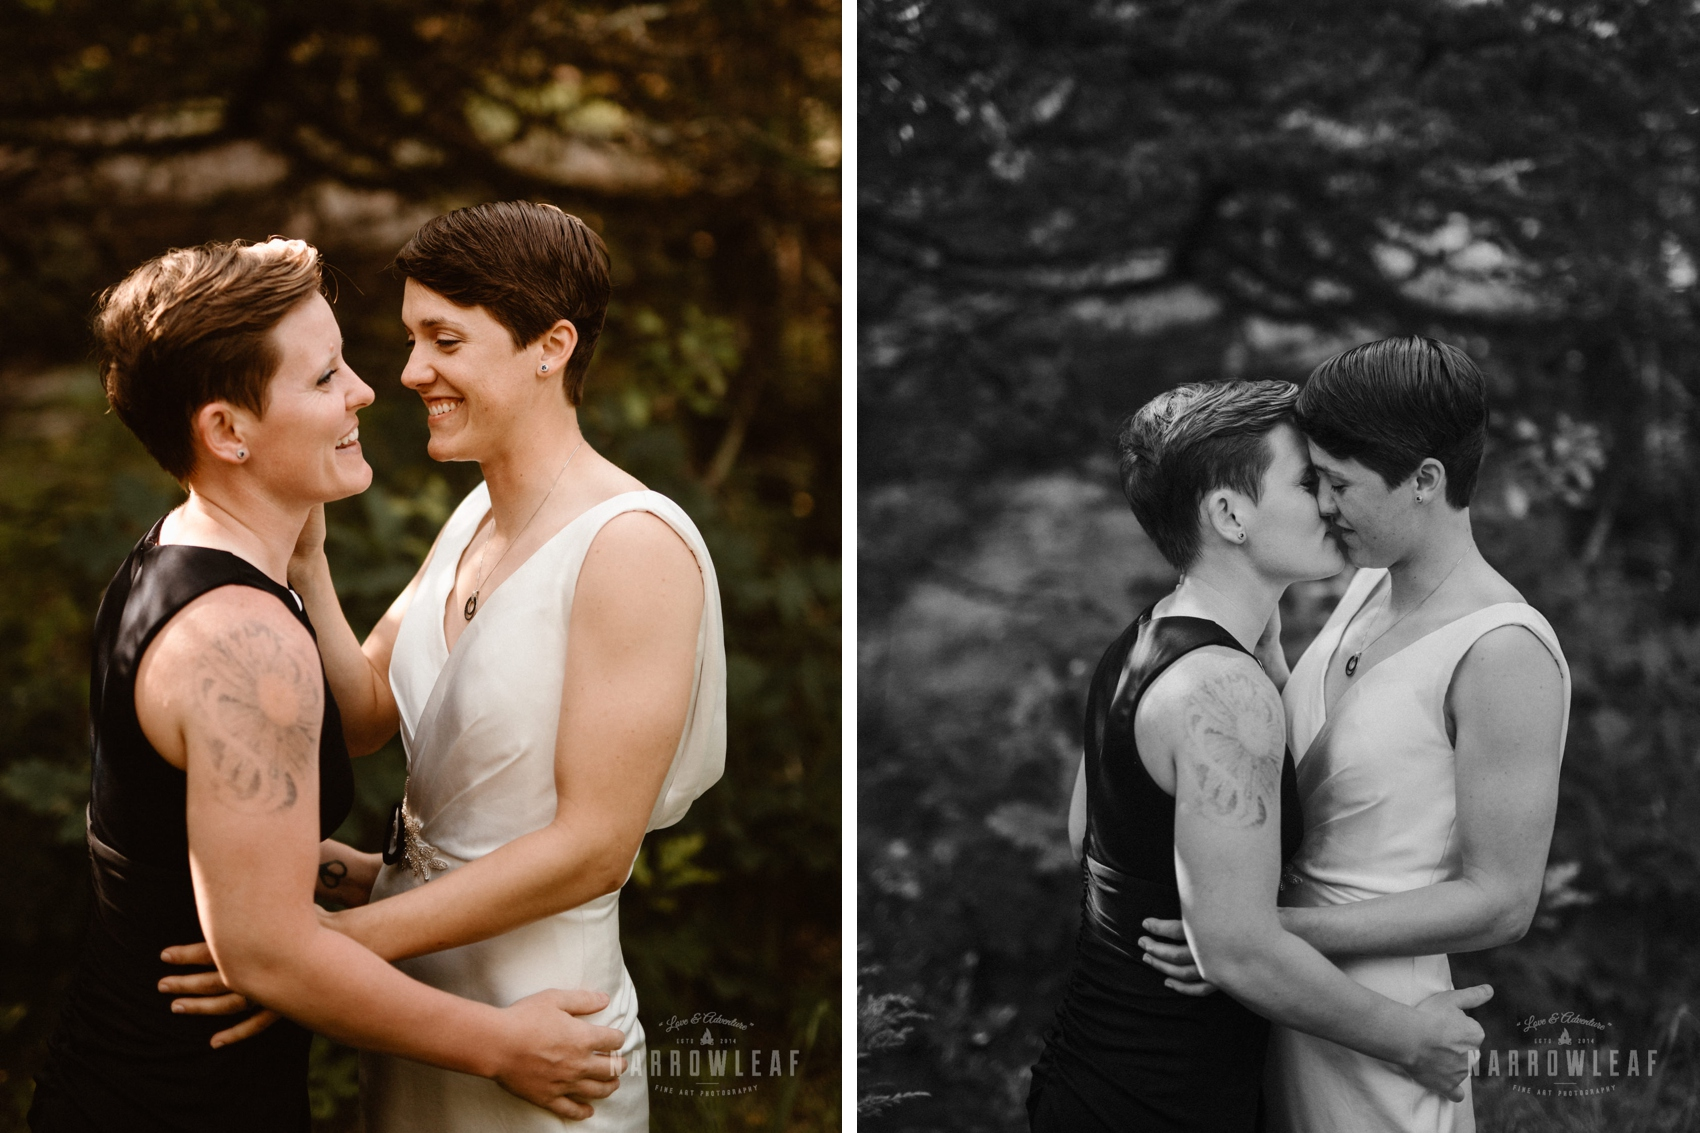 Interstate-Park-St.-Croix-Falls-WI-Elopement-Photographer-Narrowleaf_Love_and_Adventure_Photography-3.jpg